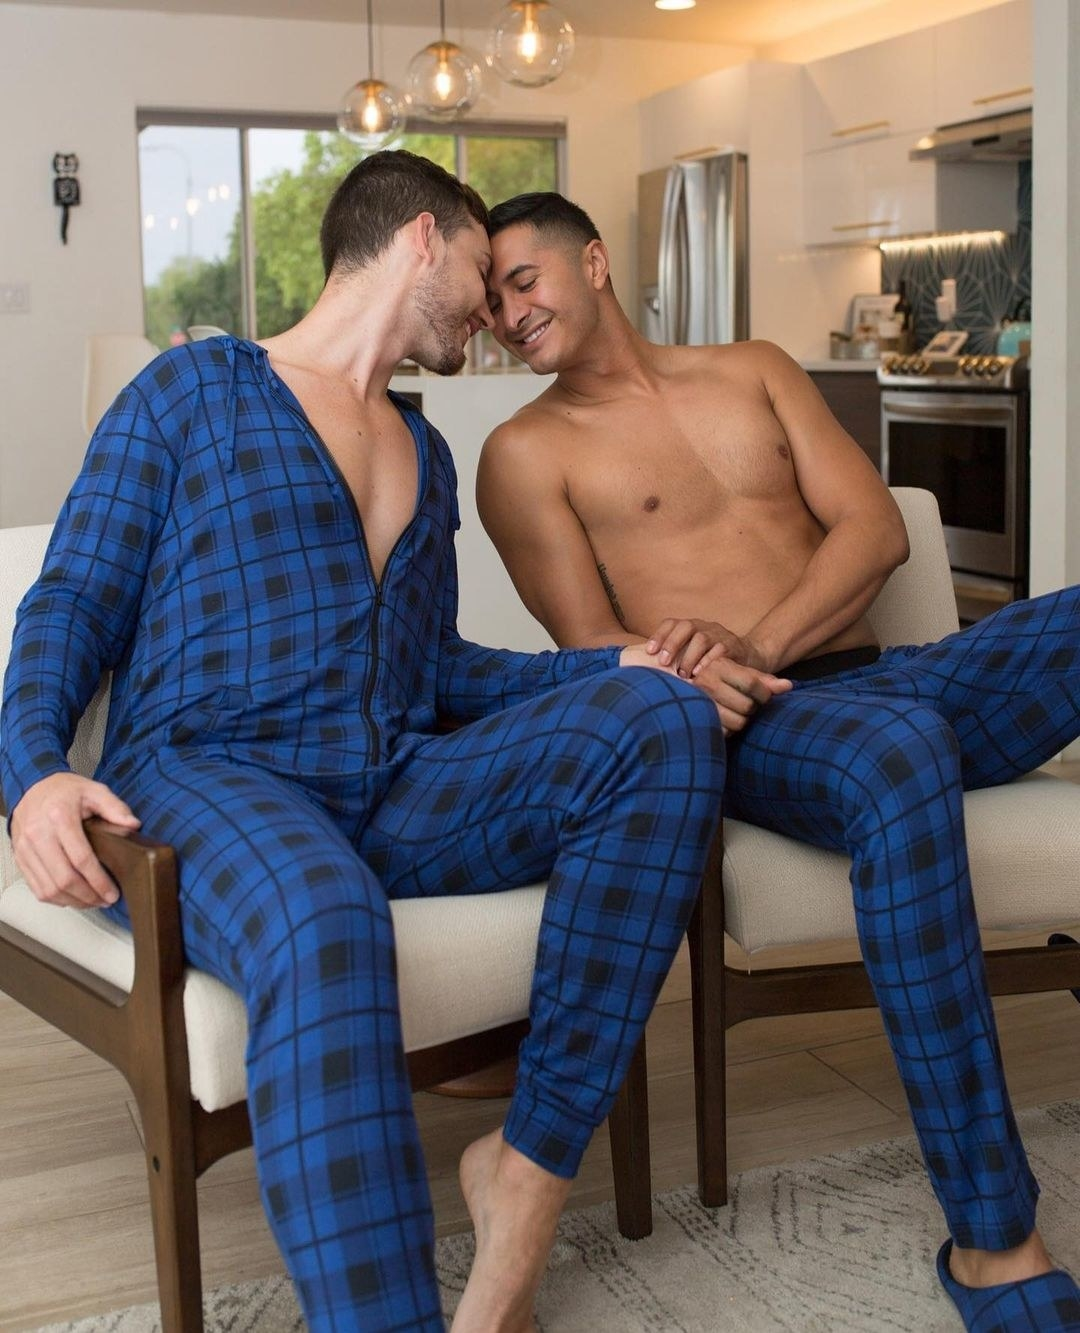 Two moodels, one in a blue plaid onesie, one in PJ pants in the same prinit